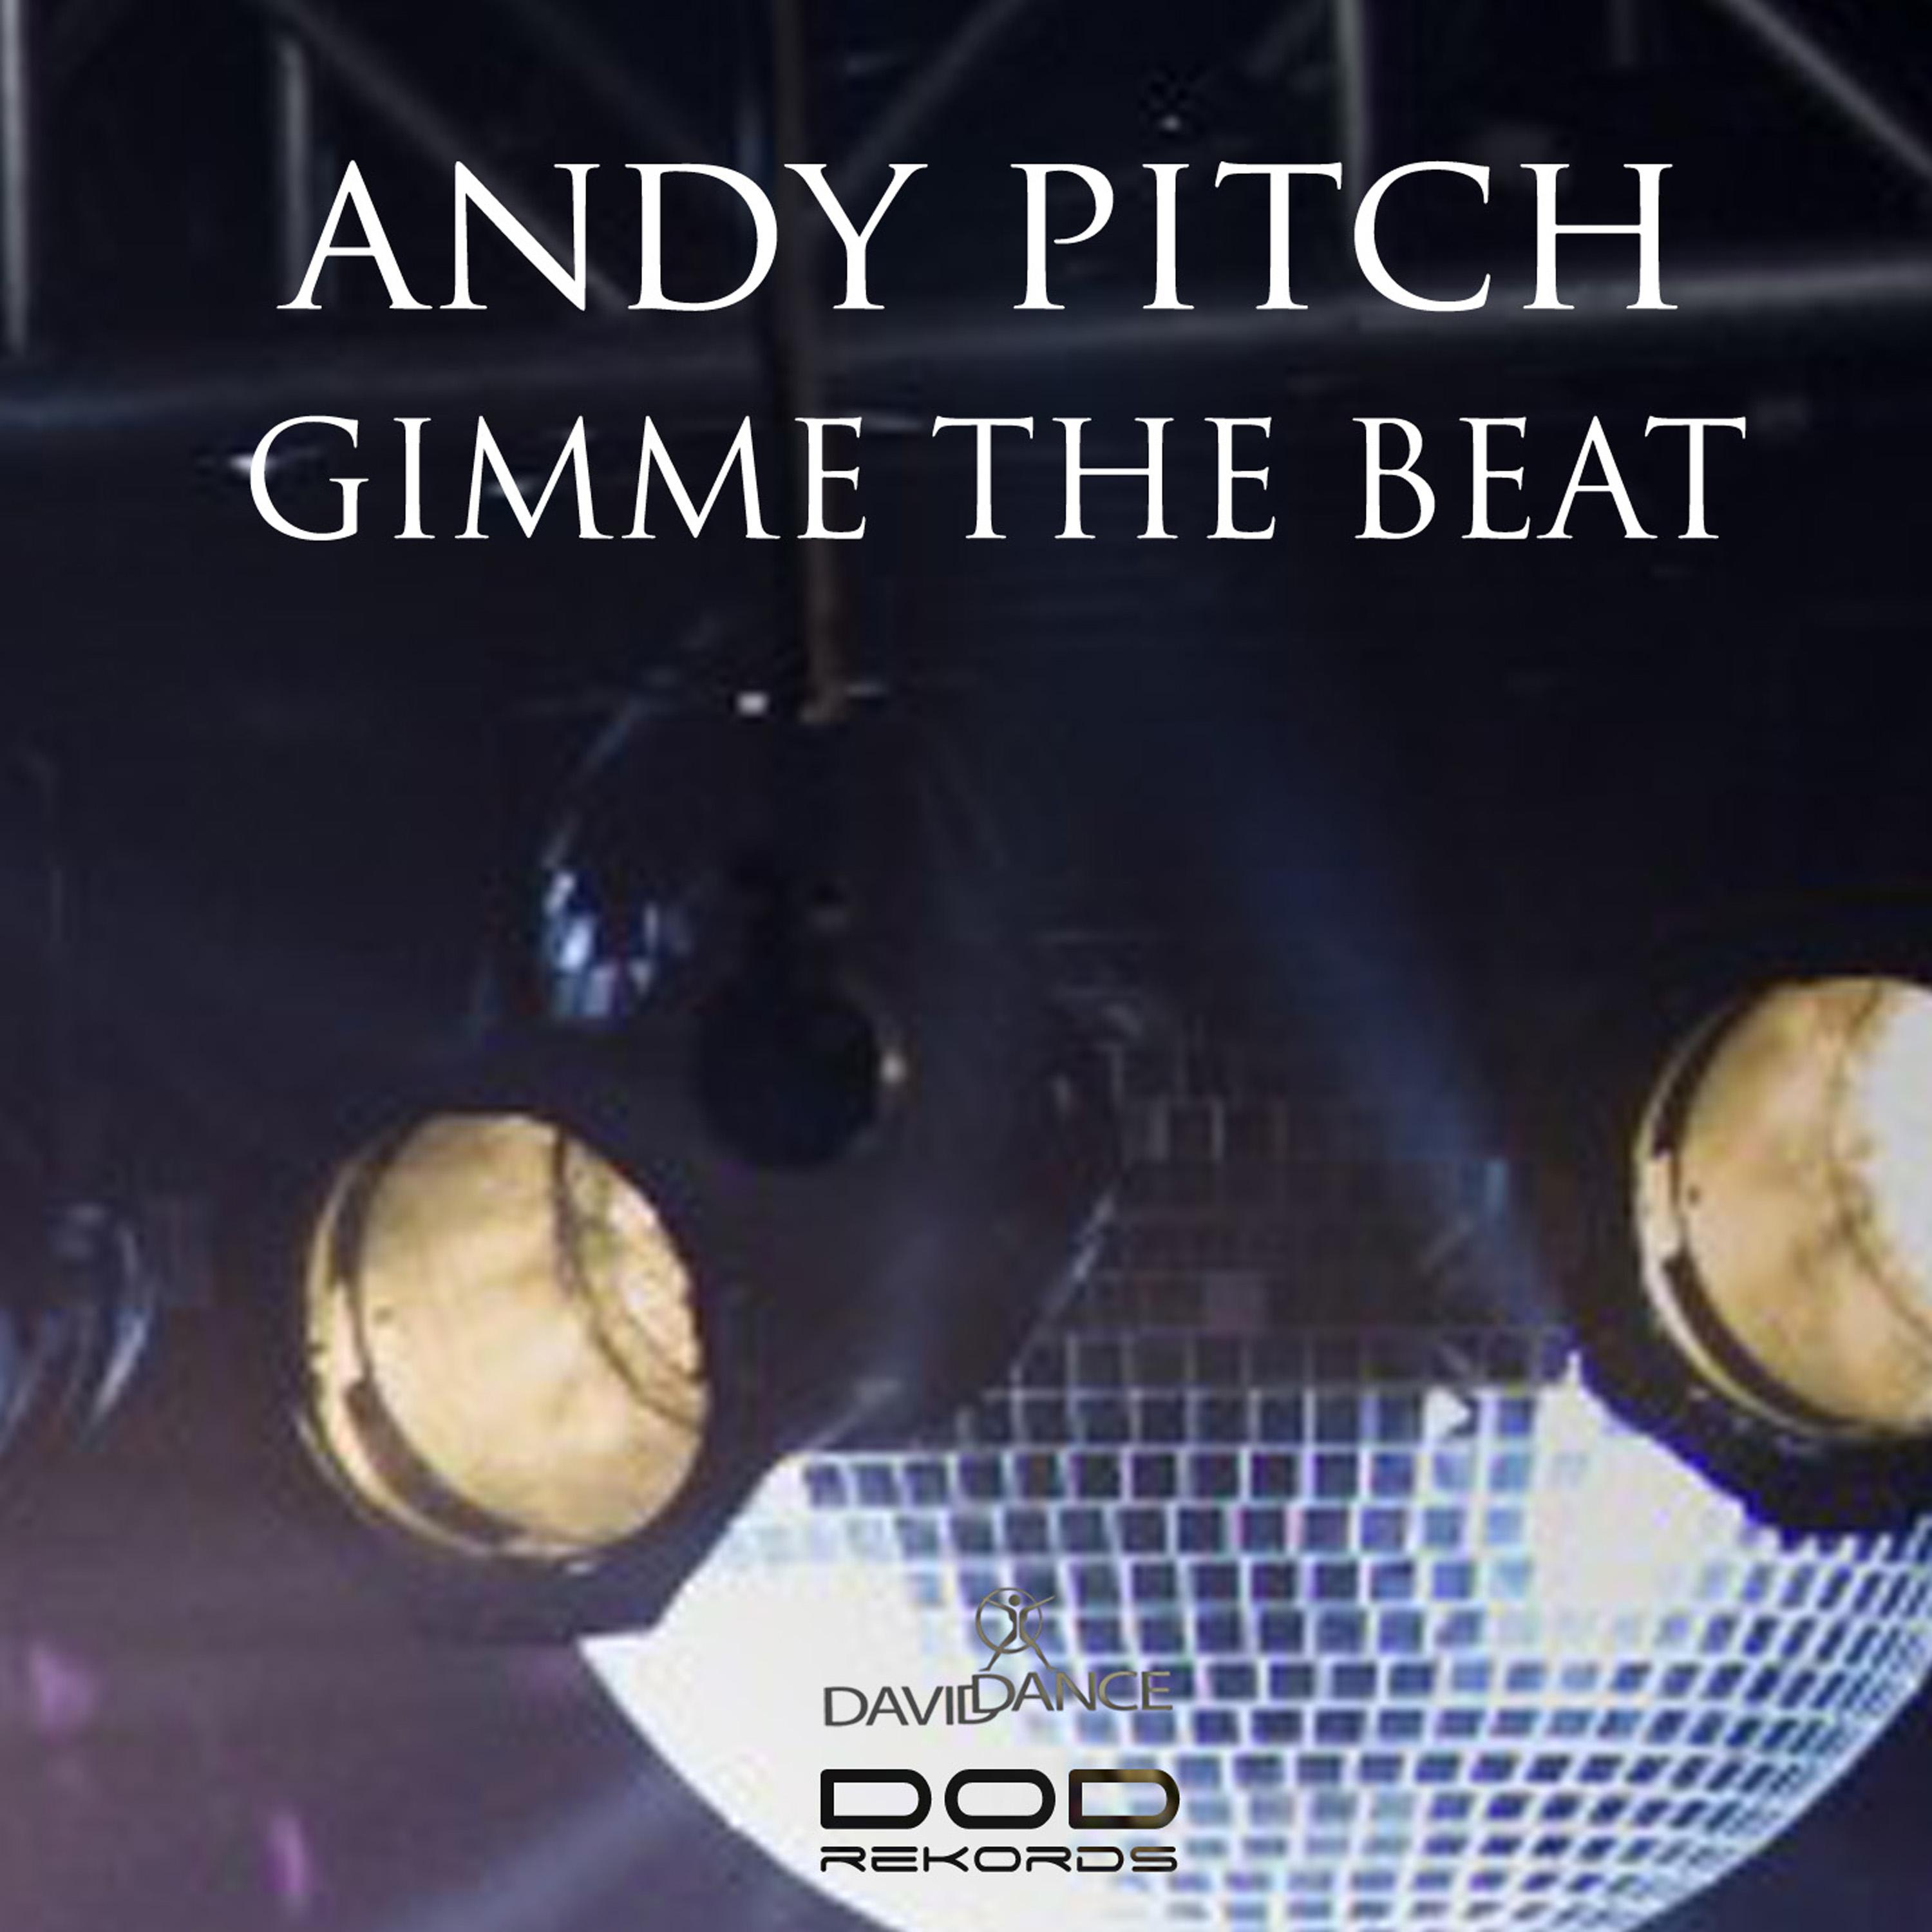 Andy Pitch - Gimme The Beat (Original mix)